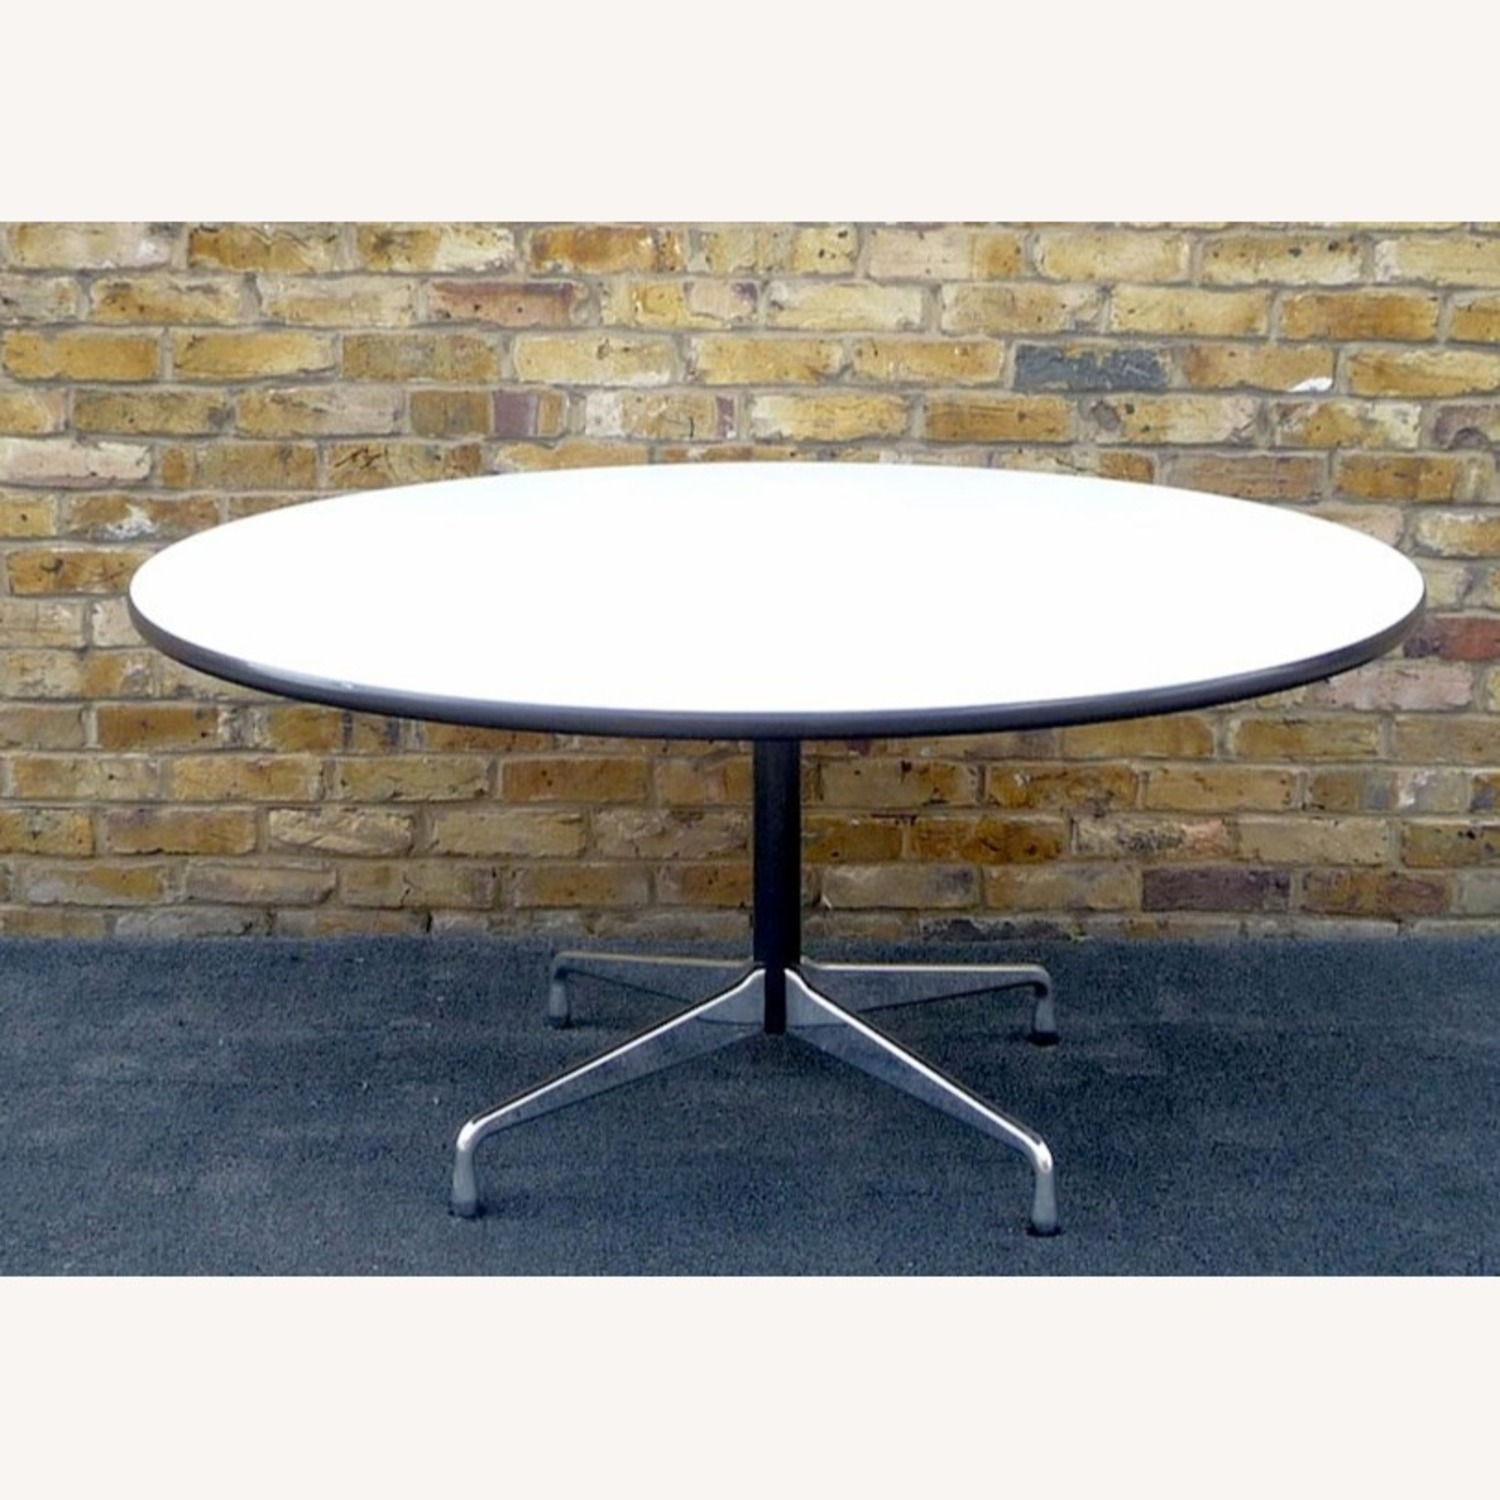 Herman Miller Eames Dining Table 54inches - image-1